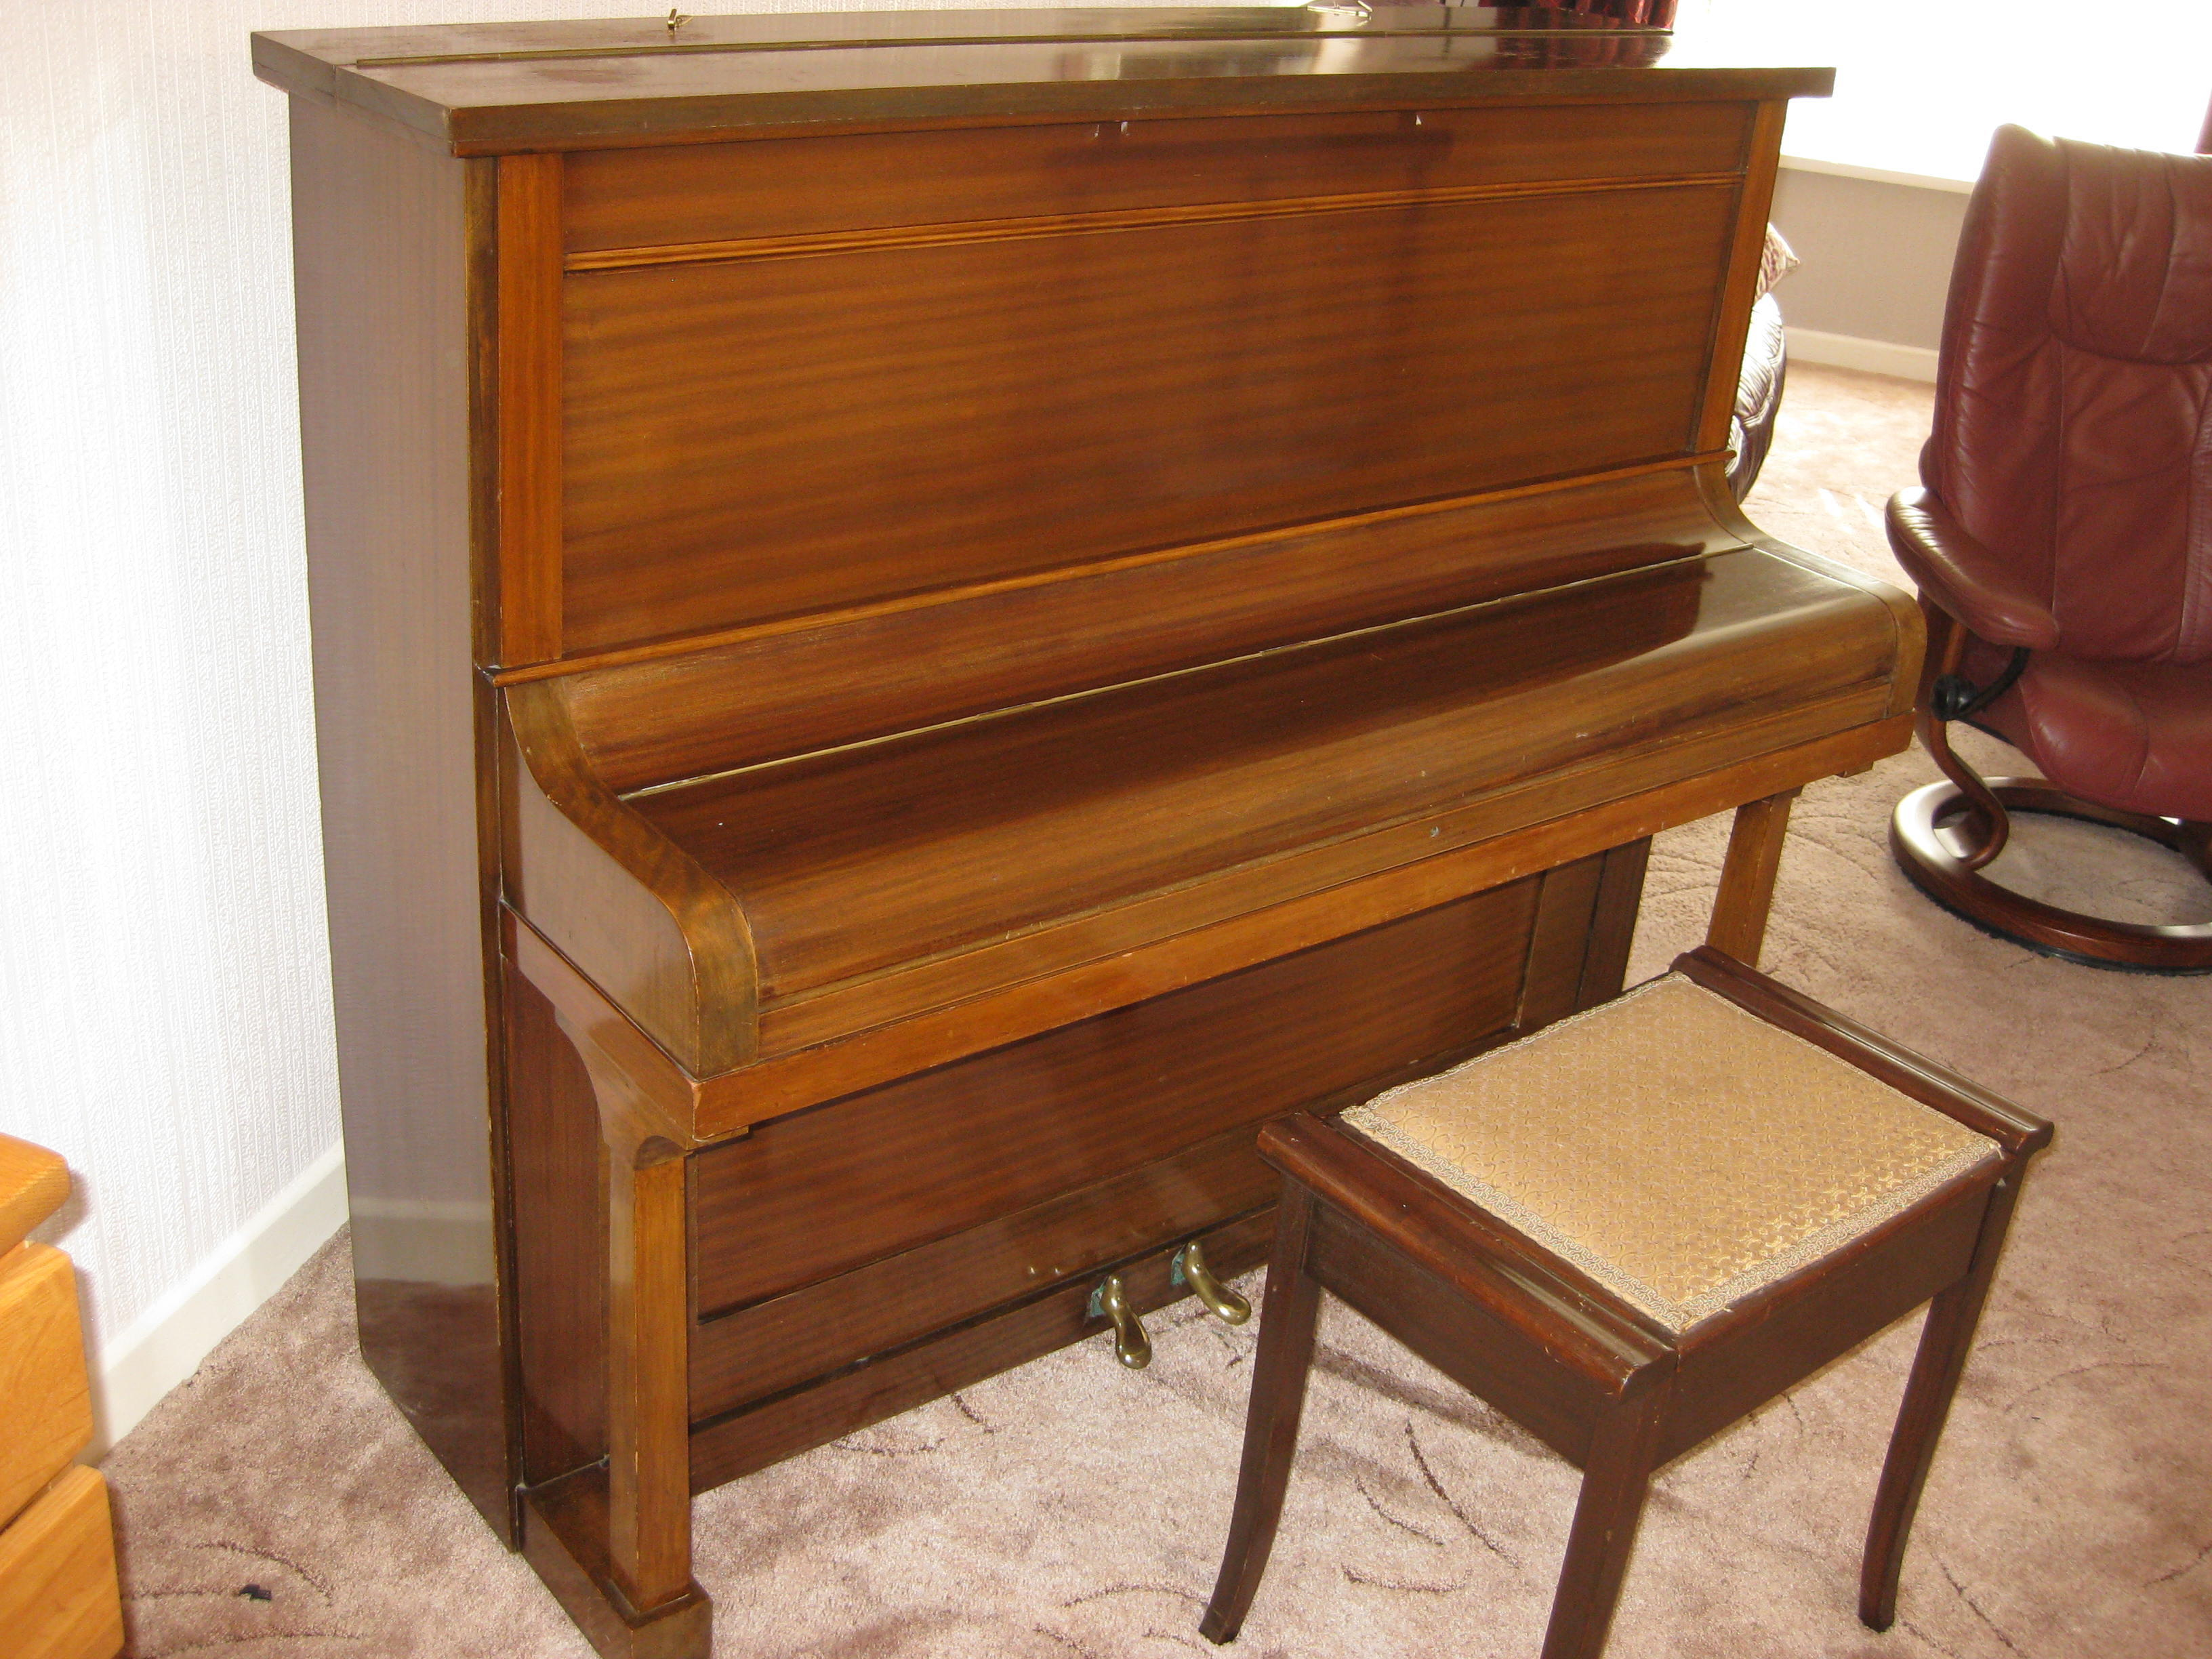 Free upright piano, stool and manuals